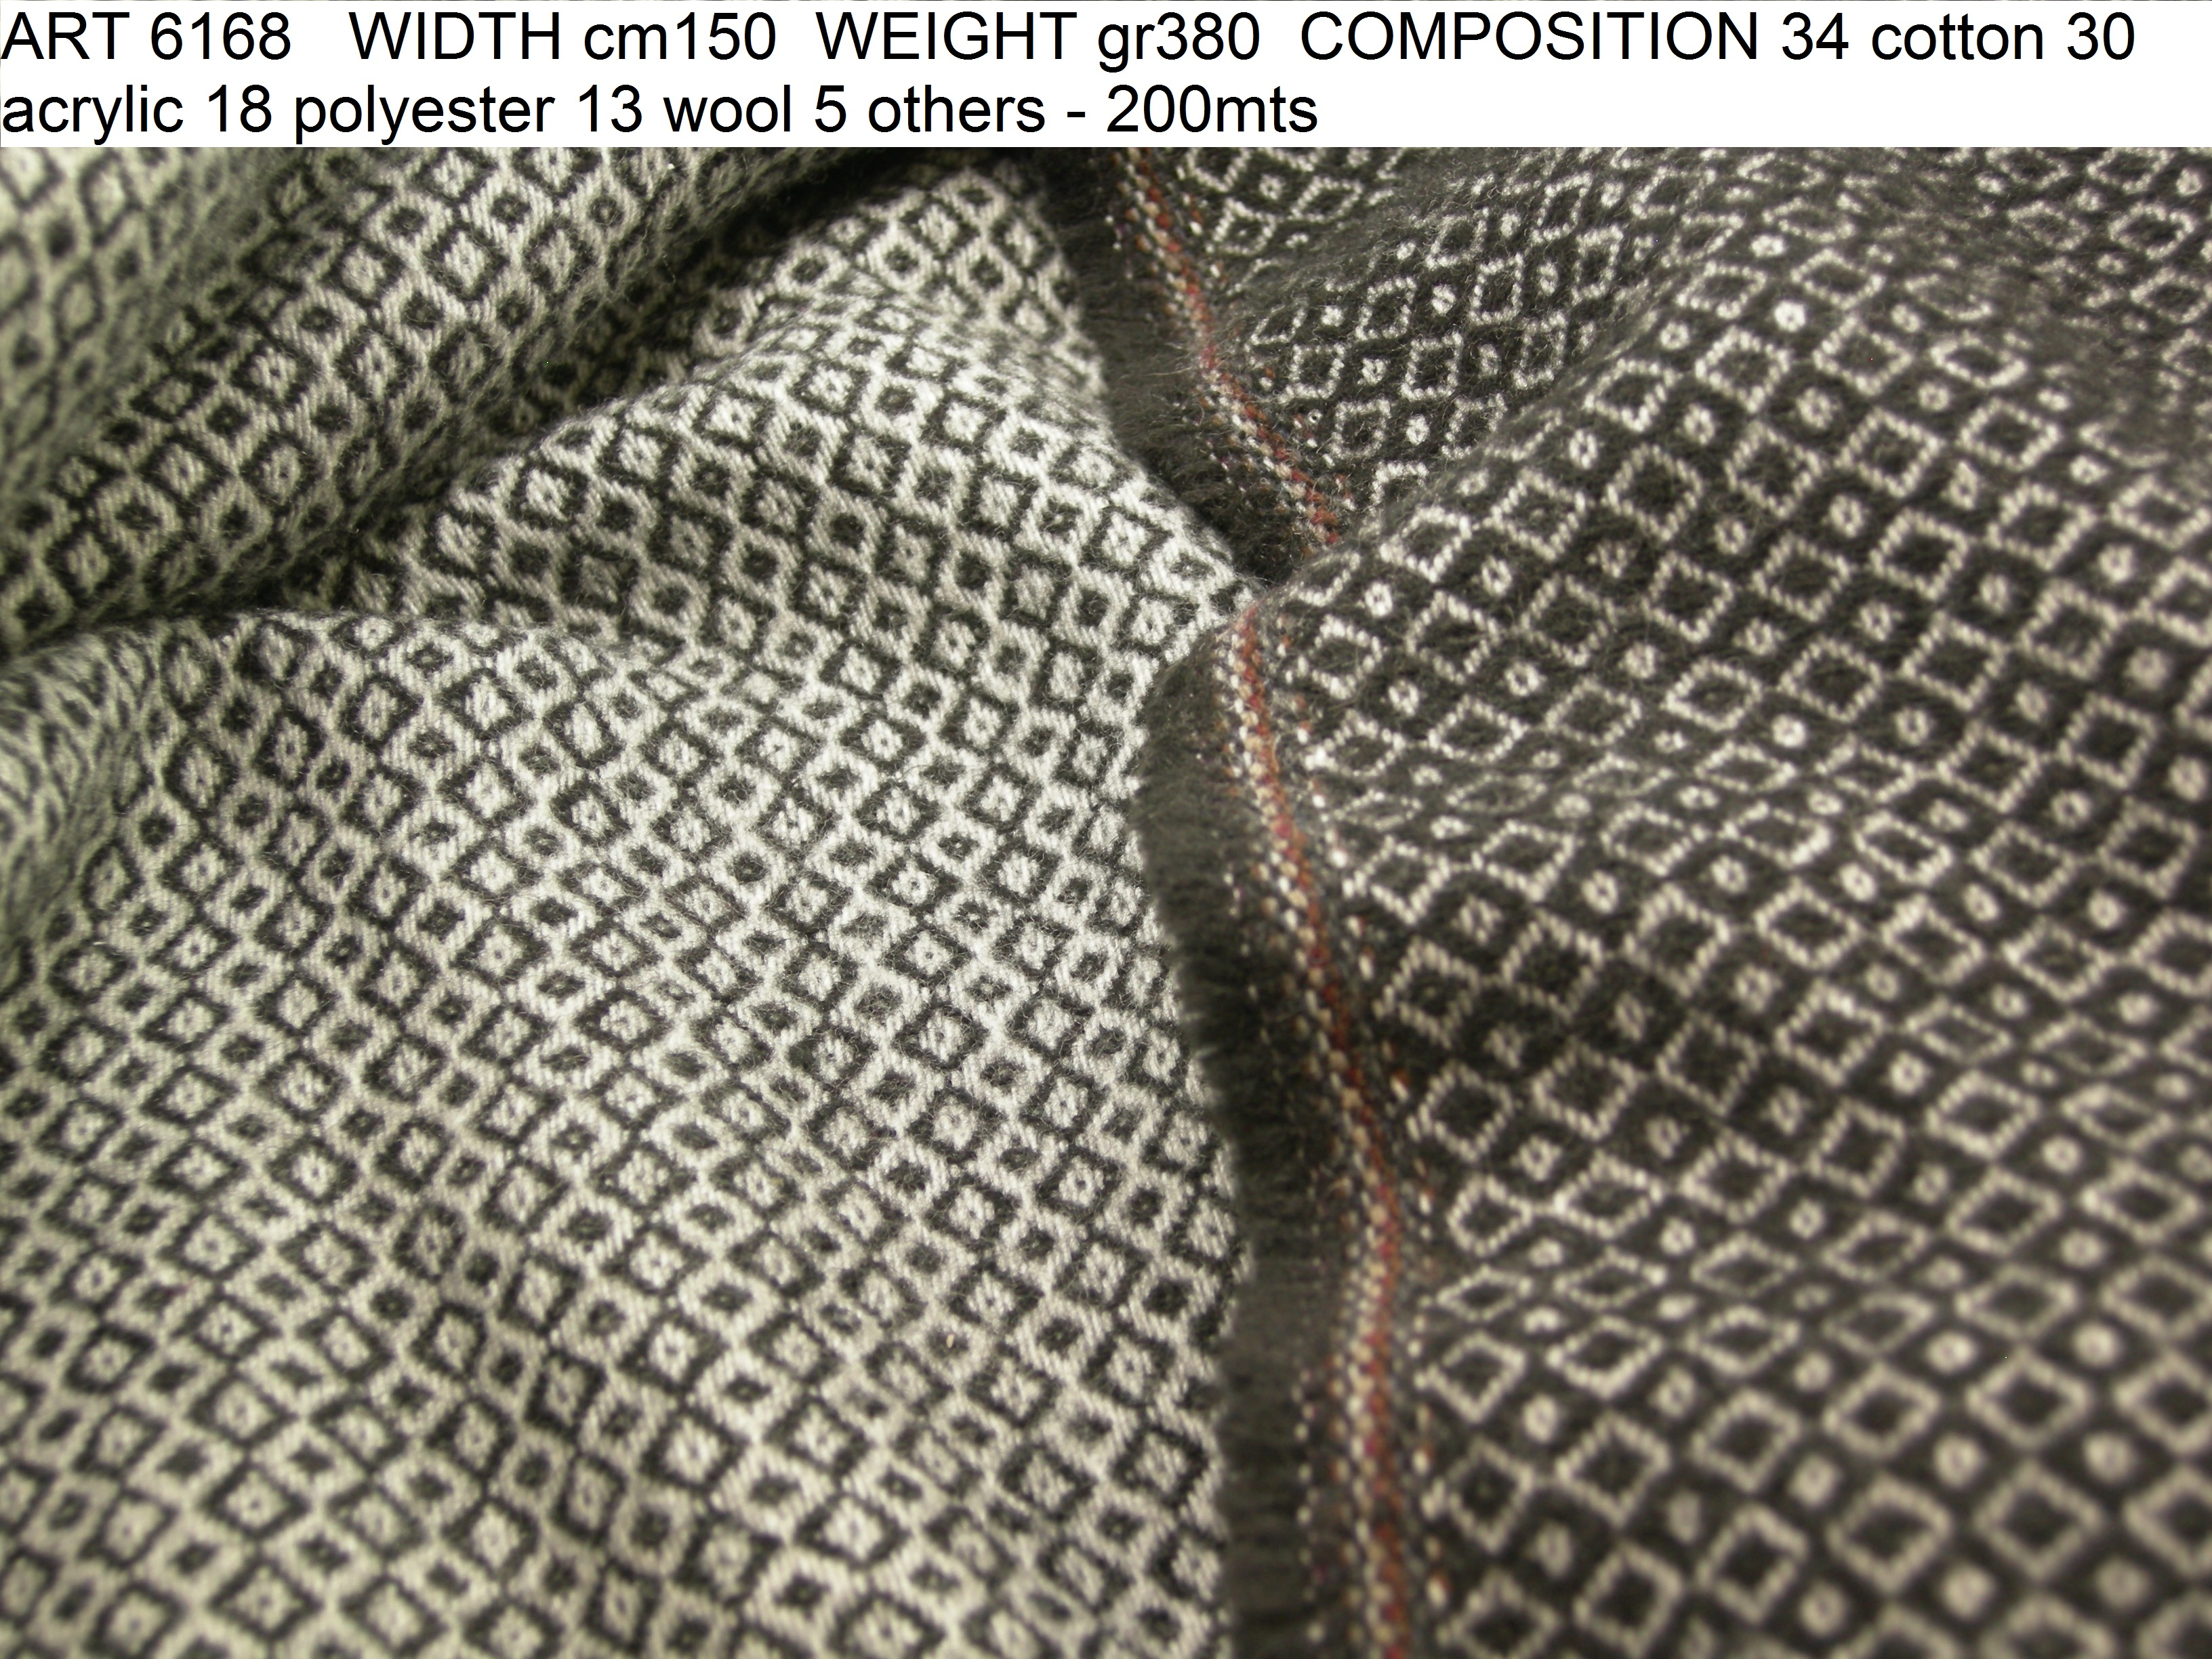 ART 6168 WIDTH cm150 WEIGHT gr380 COMPOSITION 34 cotton 30 acrylic 18 polyester 13 wool 5 others - 200mts